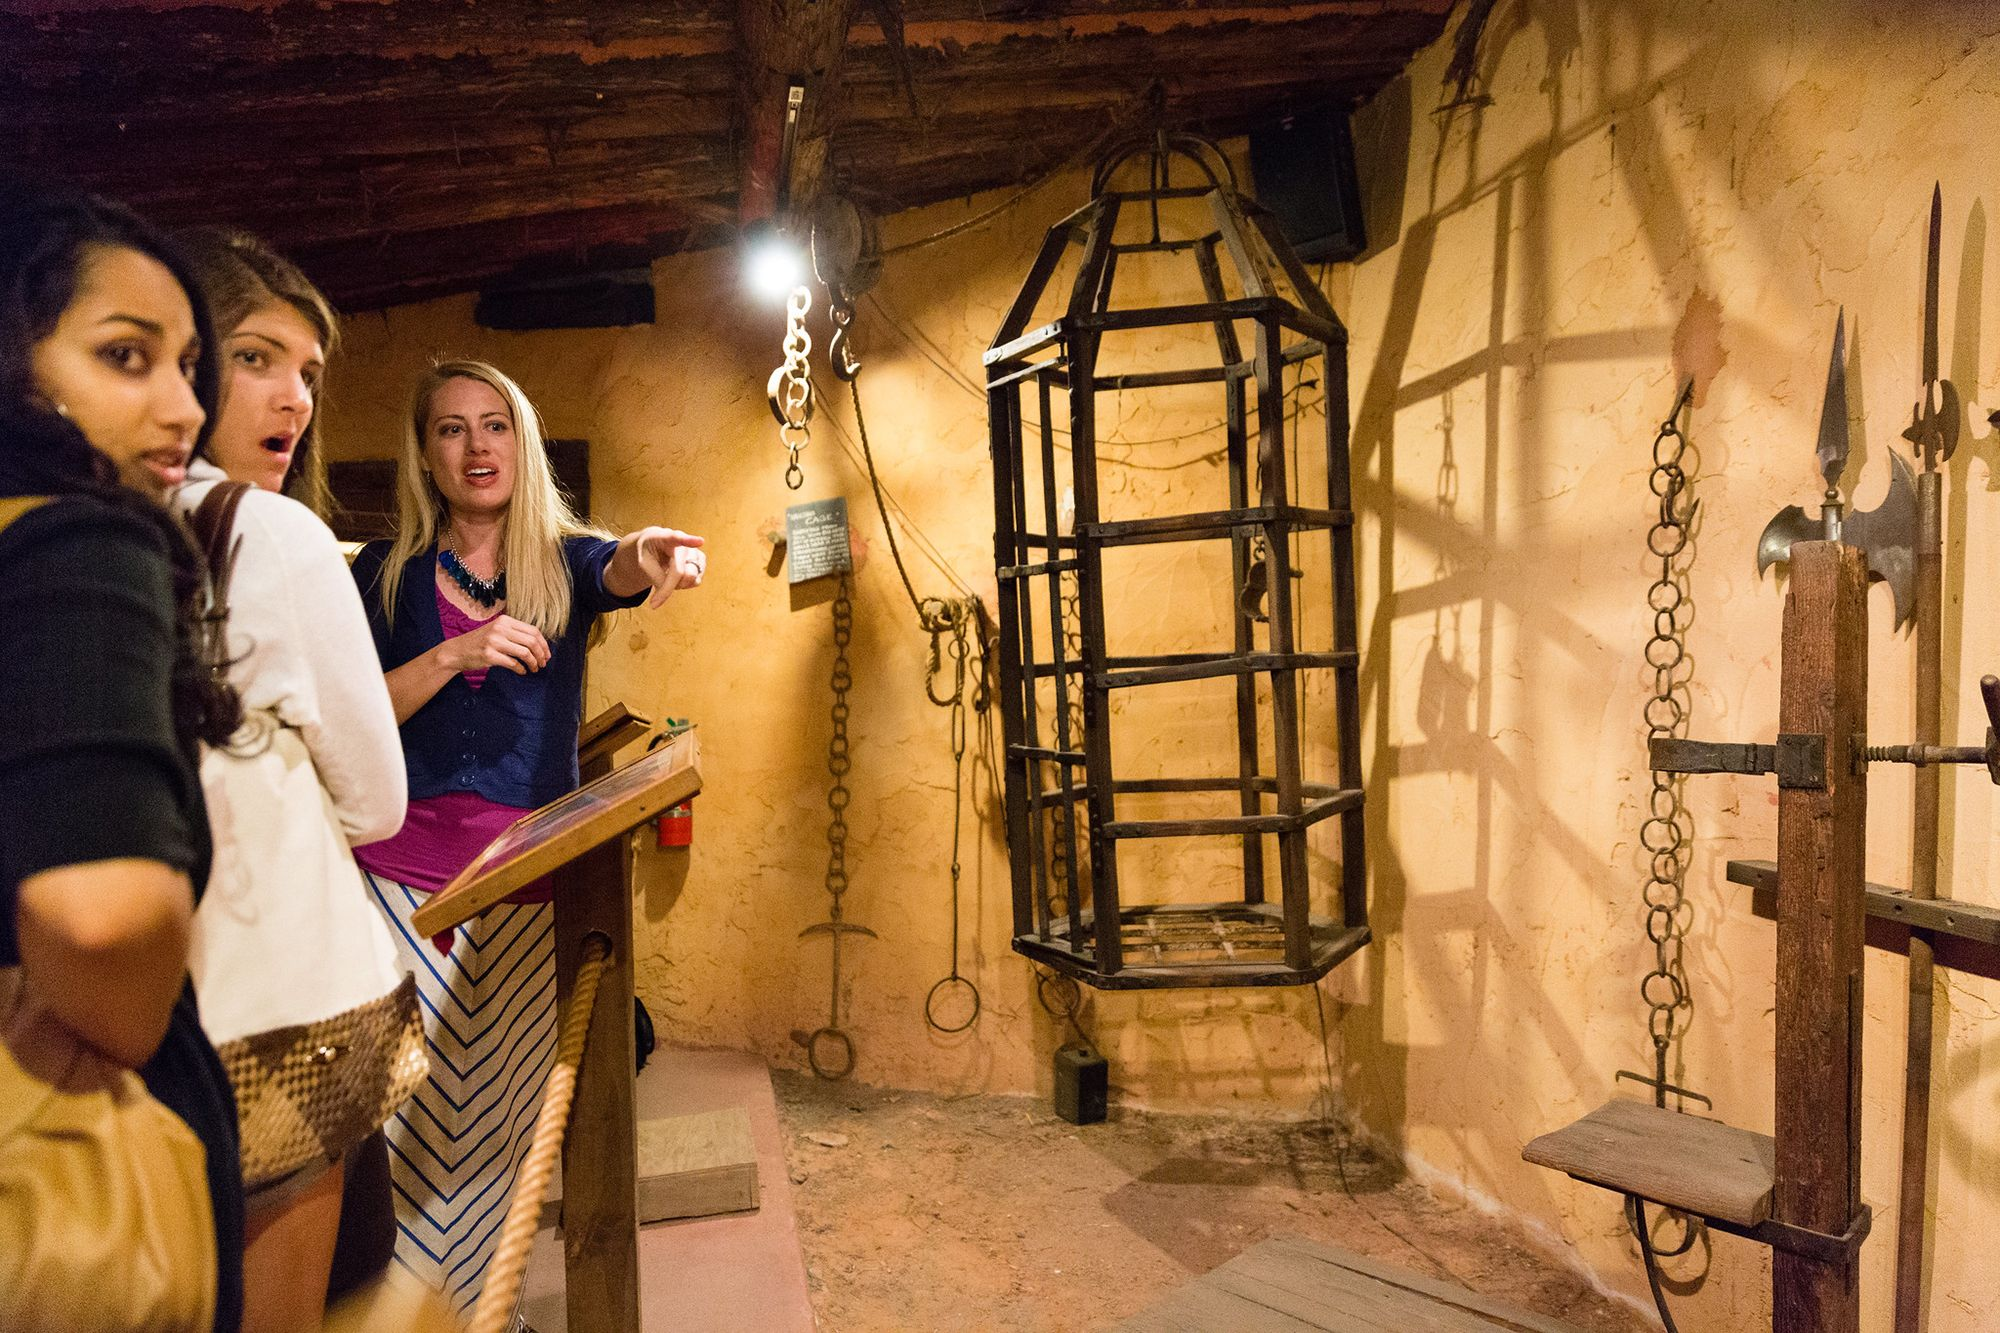 A professor and a group of students explore Medieval Times during a class trip.